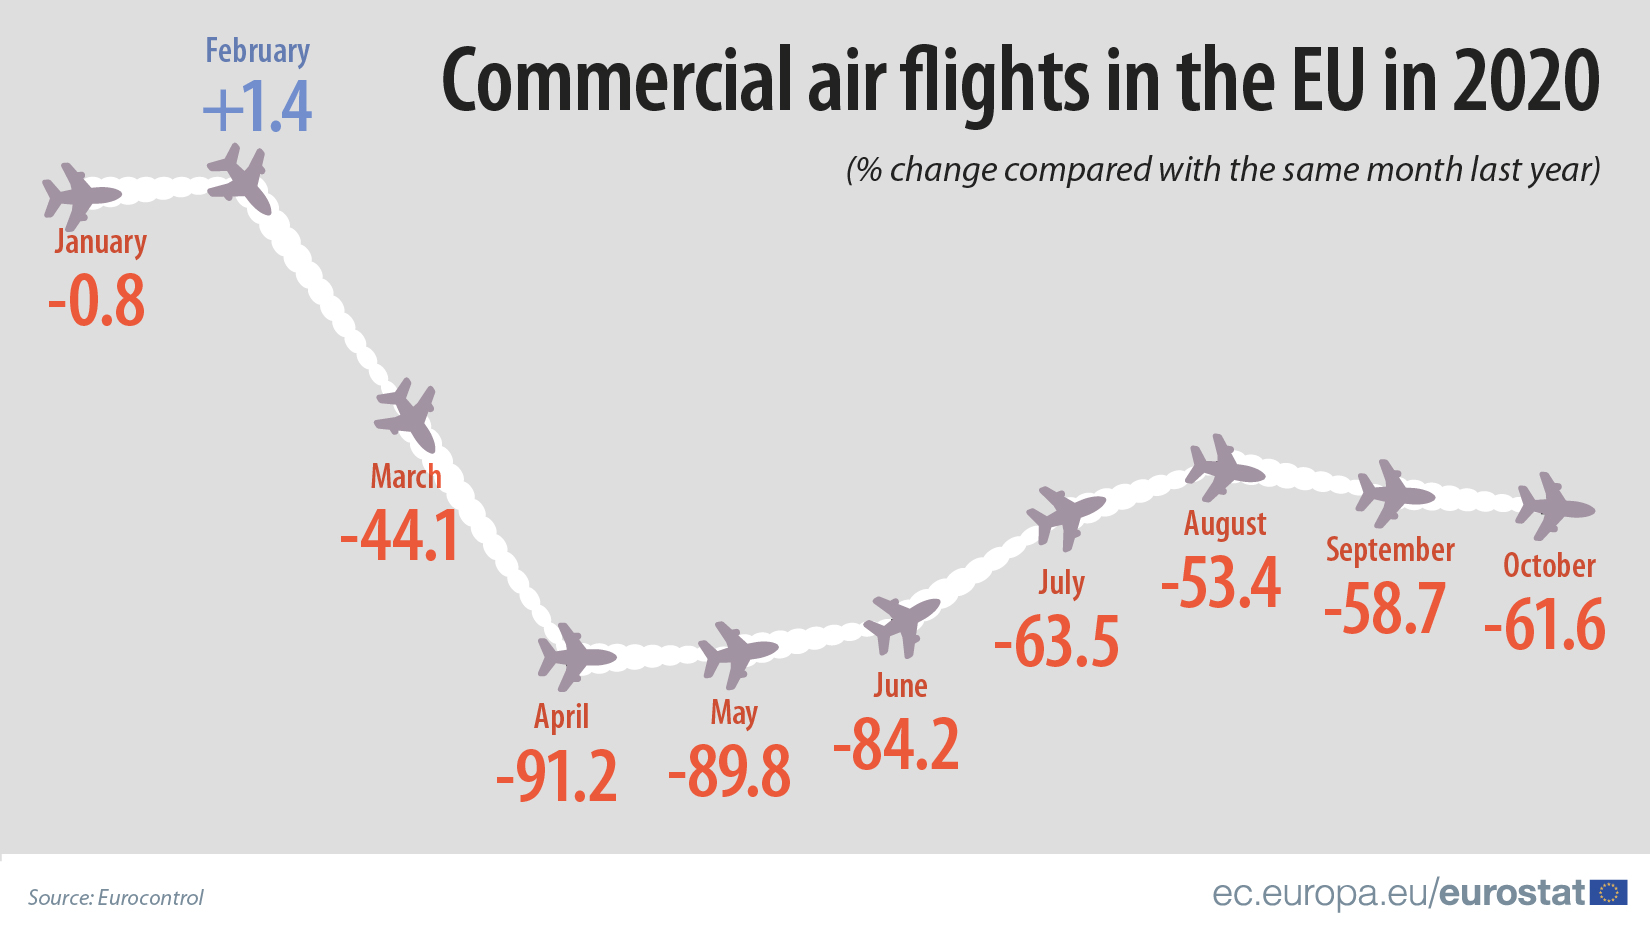 Commercial air flights in the EU in 2020 (compared with last year)